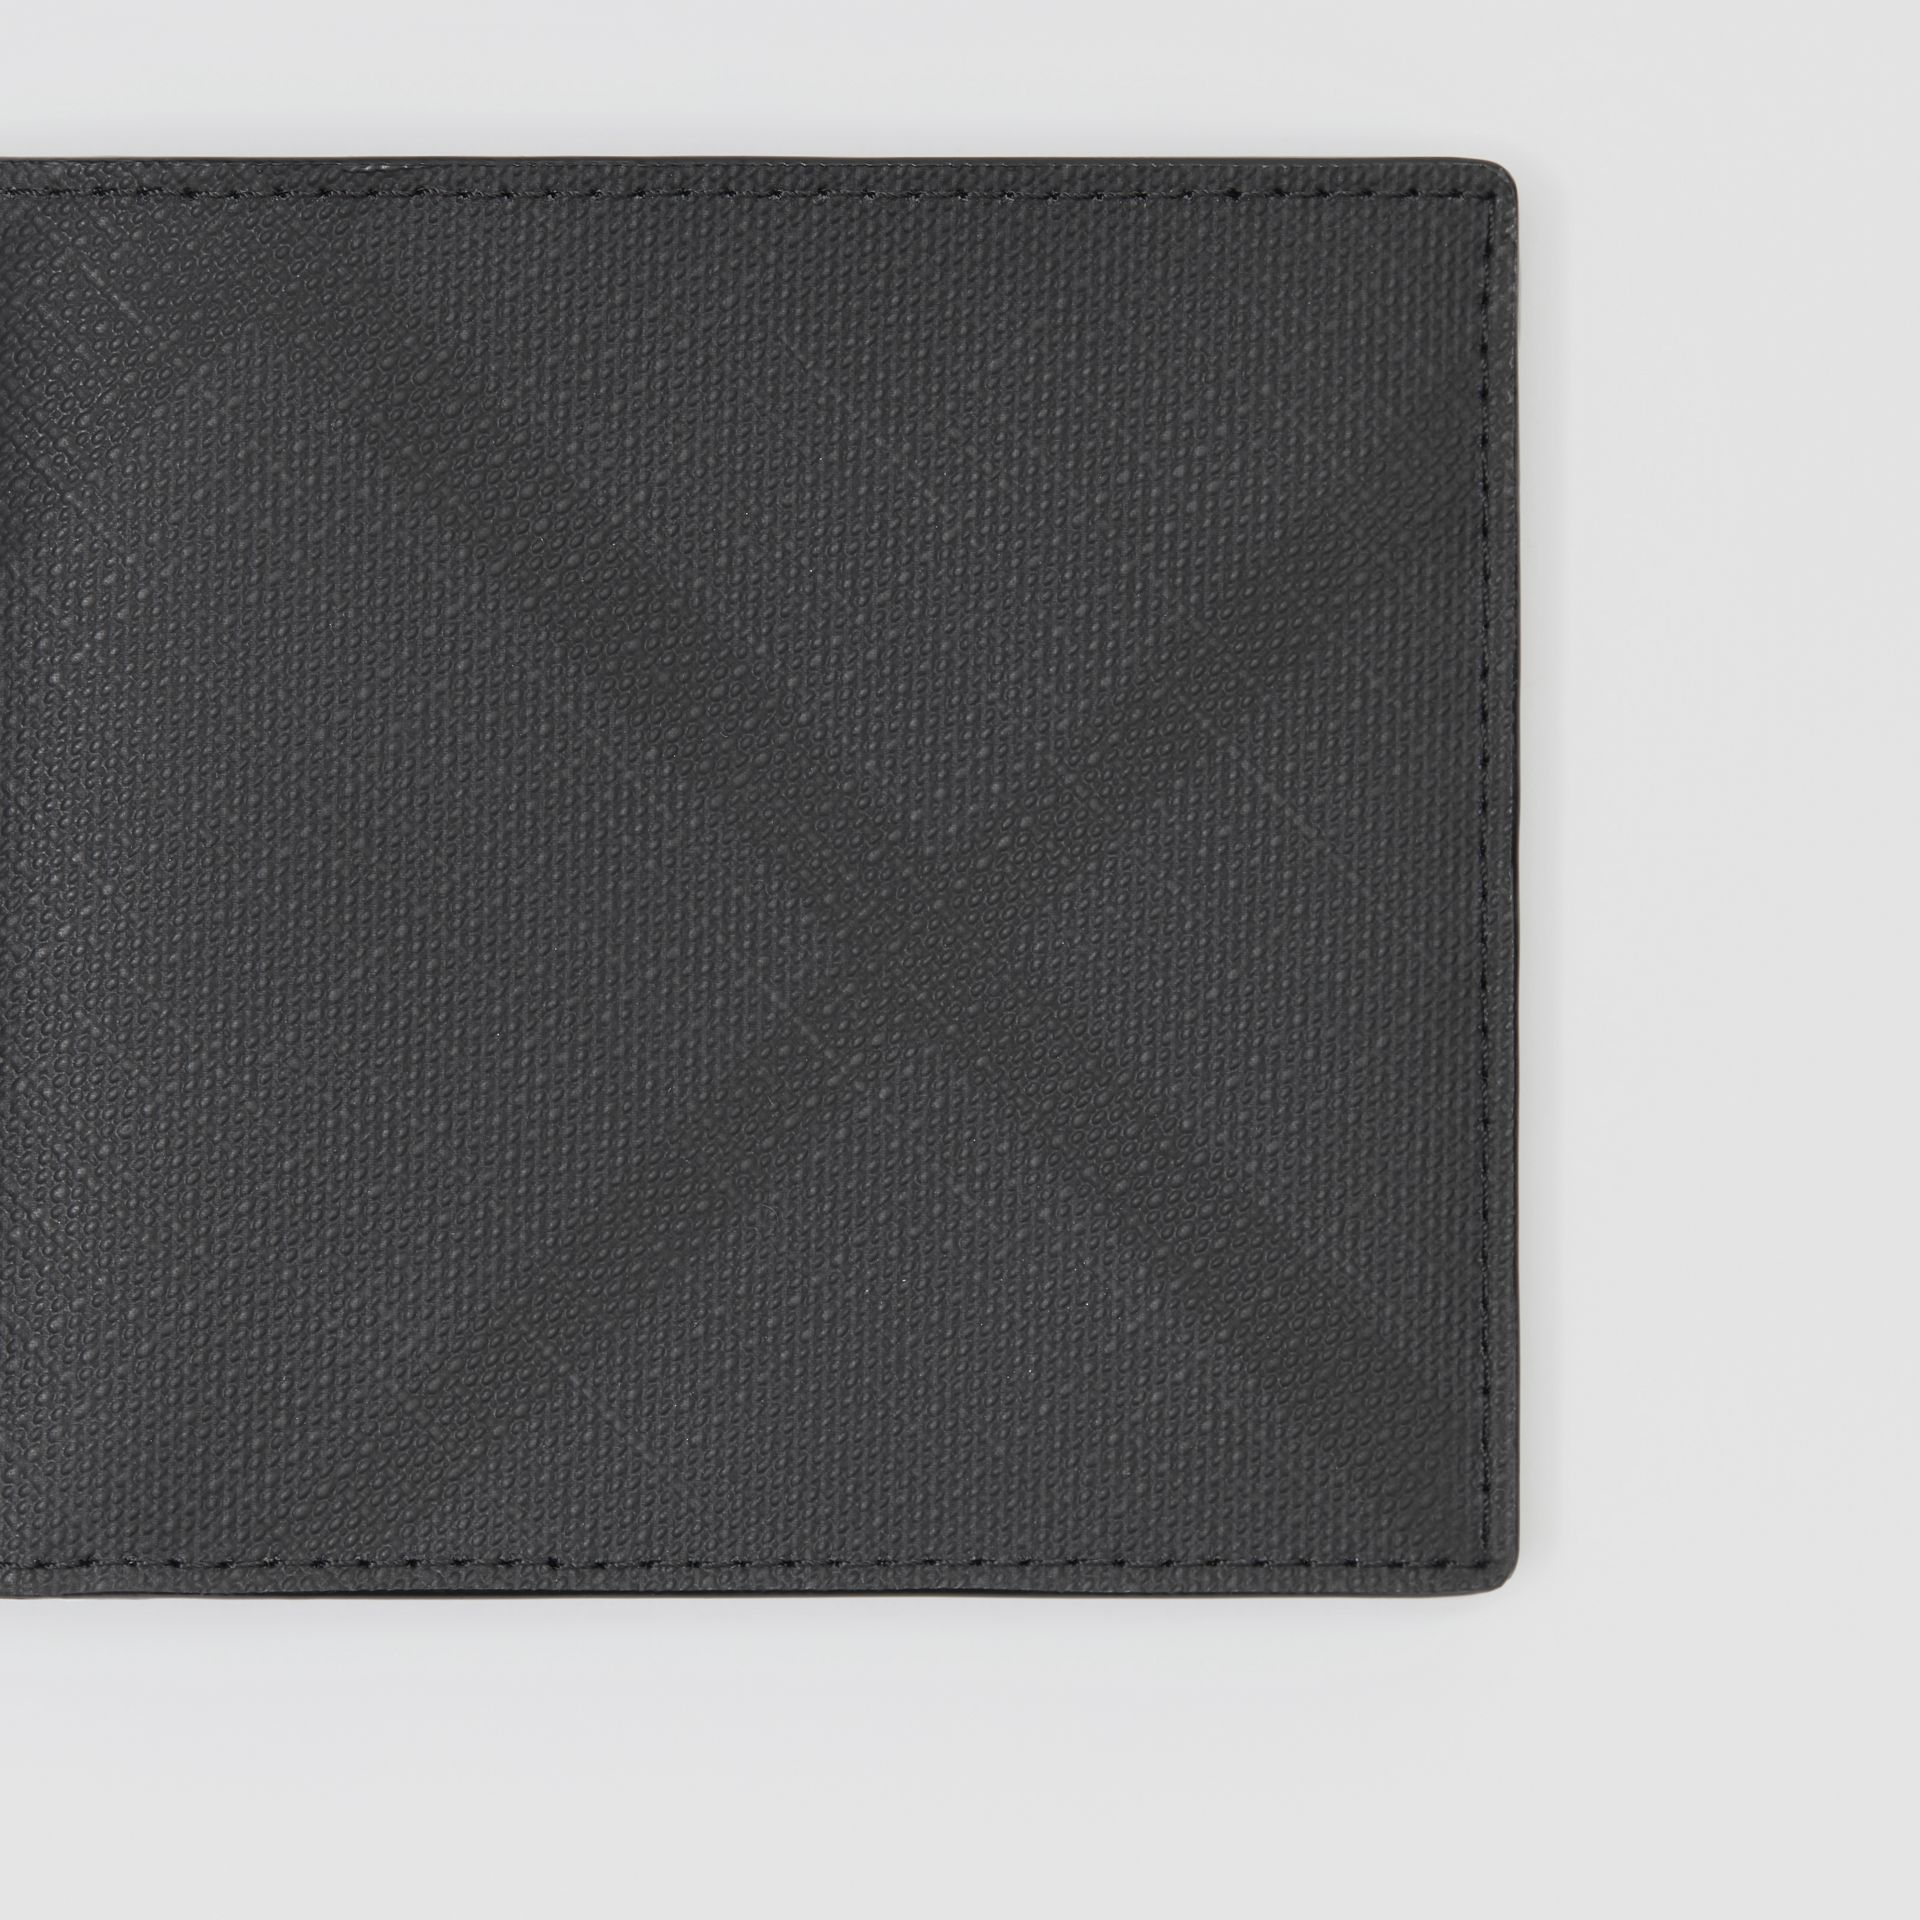 London Check and Leather International Bifold Wallet in Dark Charcoal - Men | Burberry - gallery image 1